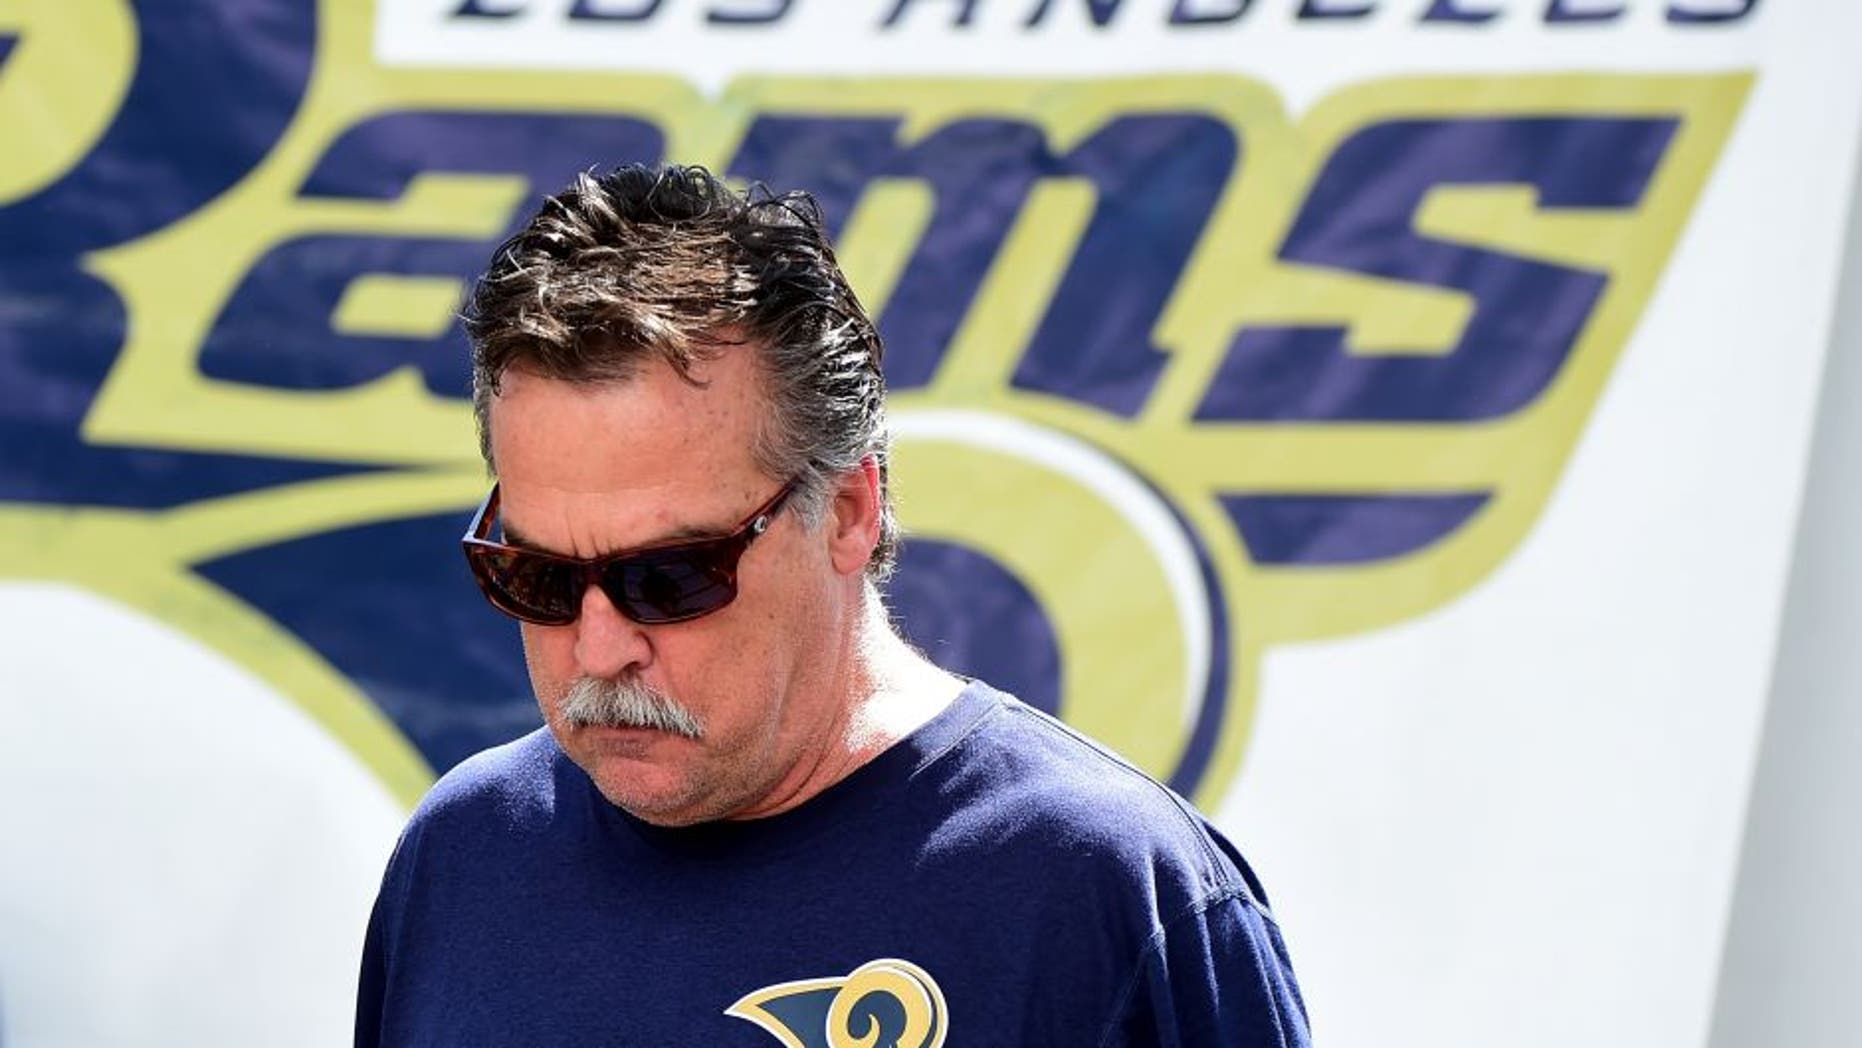 OXNARD, CA - MAY 06: Head coach Jeff Fisher of the Los Angeles Rams takes to the field during a Los Angeles Rams rookie camp on May 06, 2016 in Oxnard, California. (Photo by Harry How/Getty Images)